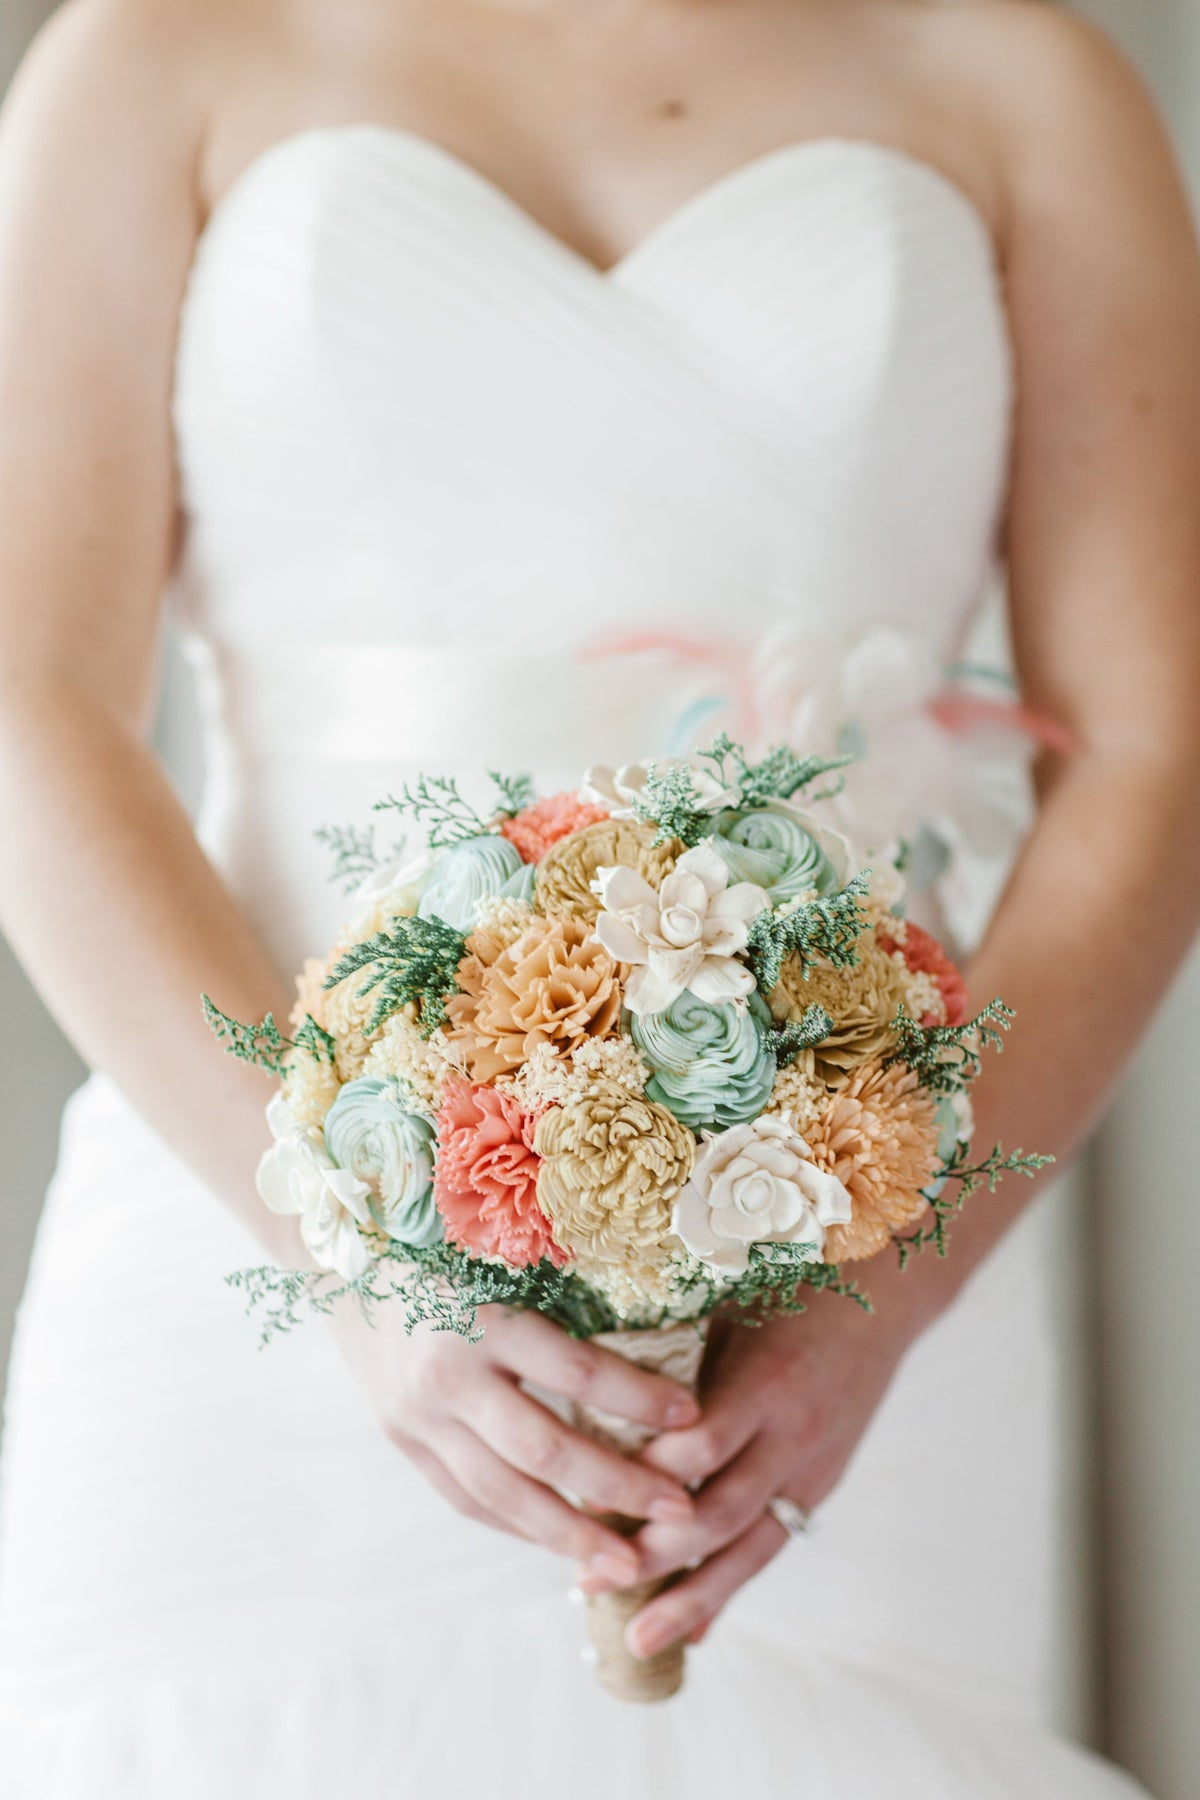 Daisies Rice Flowers Bridal Bouquet Baby/'s Breath Wheat Sola Wood Flowers Fall Wood Flower Bouquet with Calla Lilies Elopement